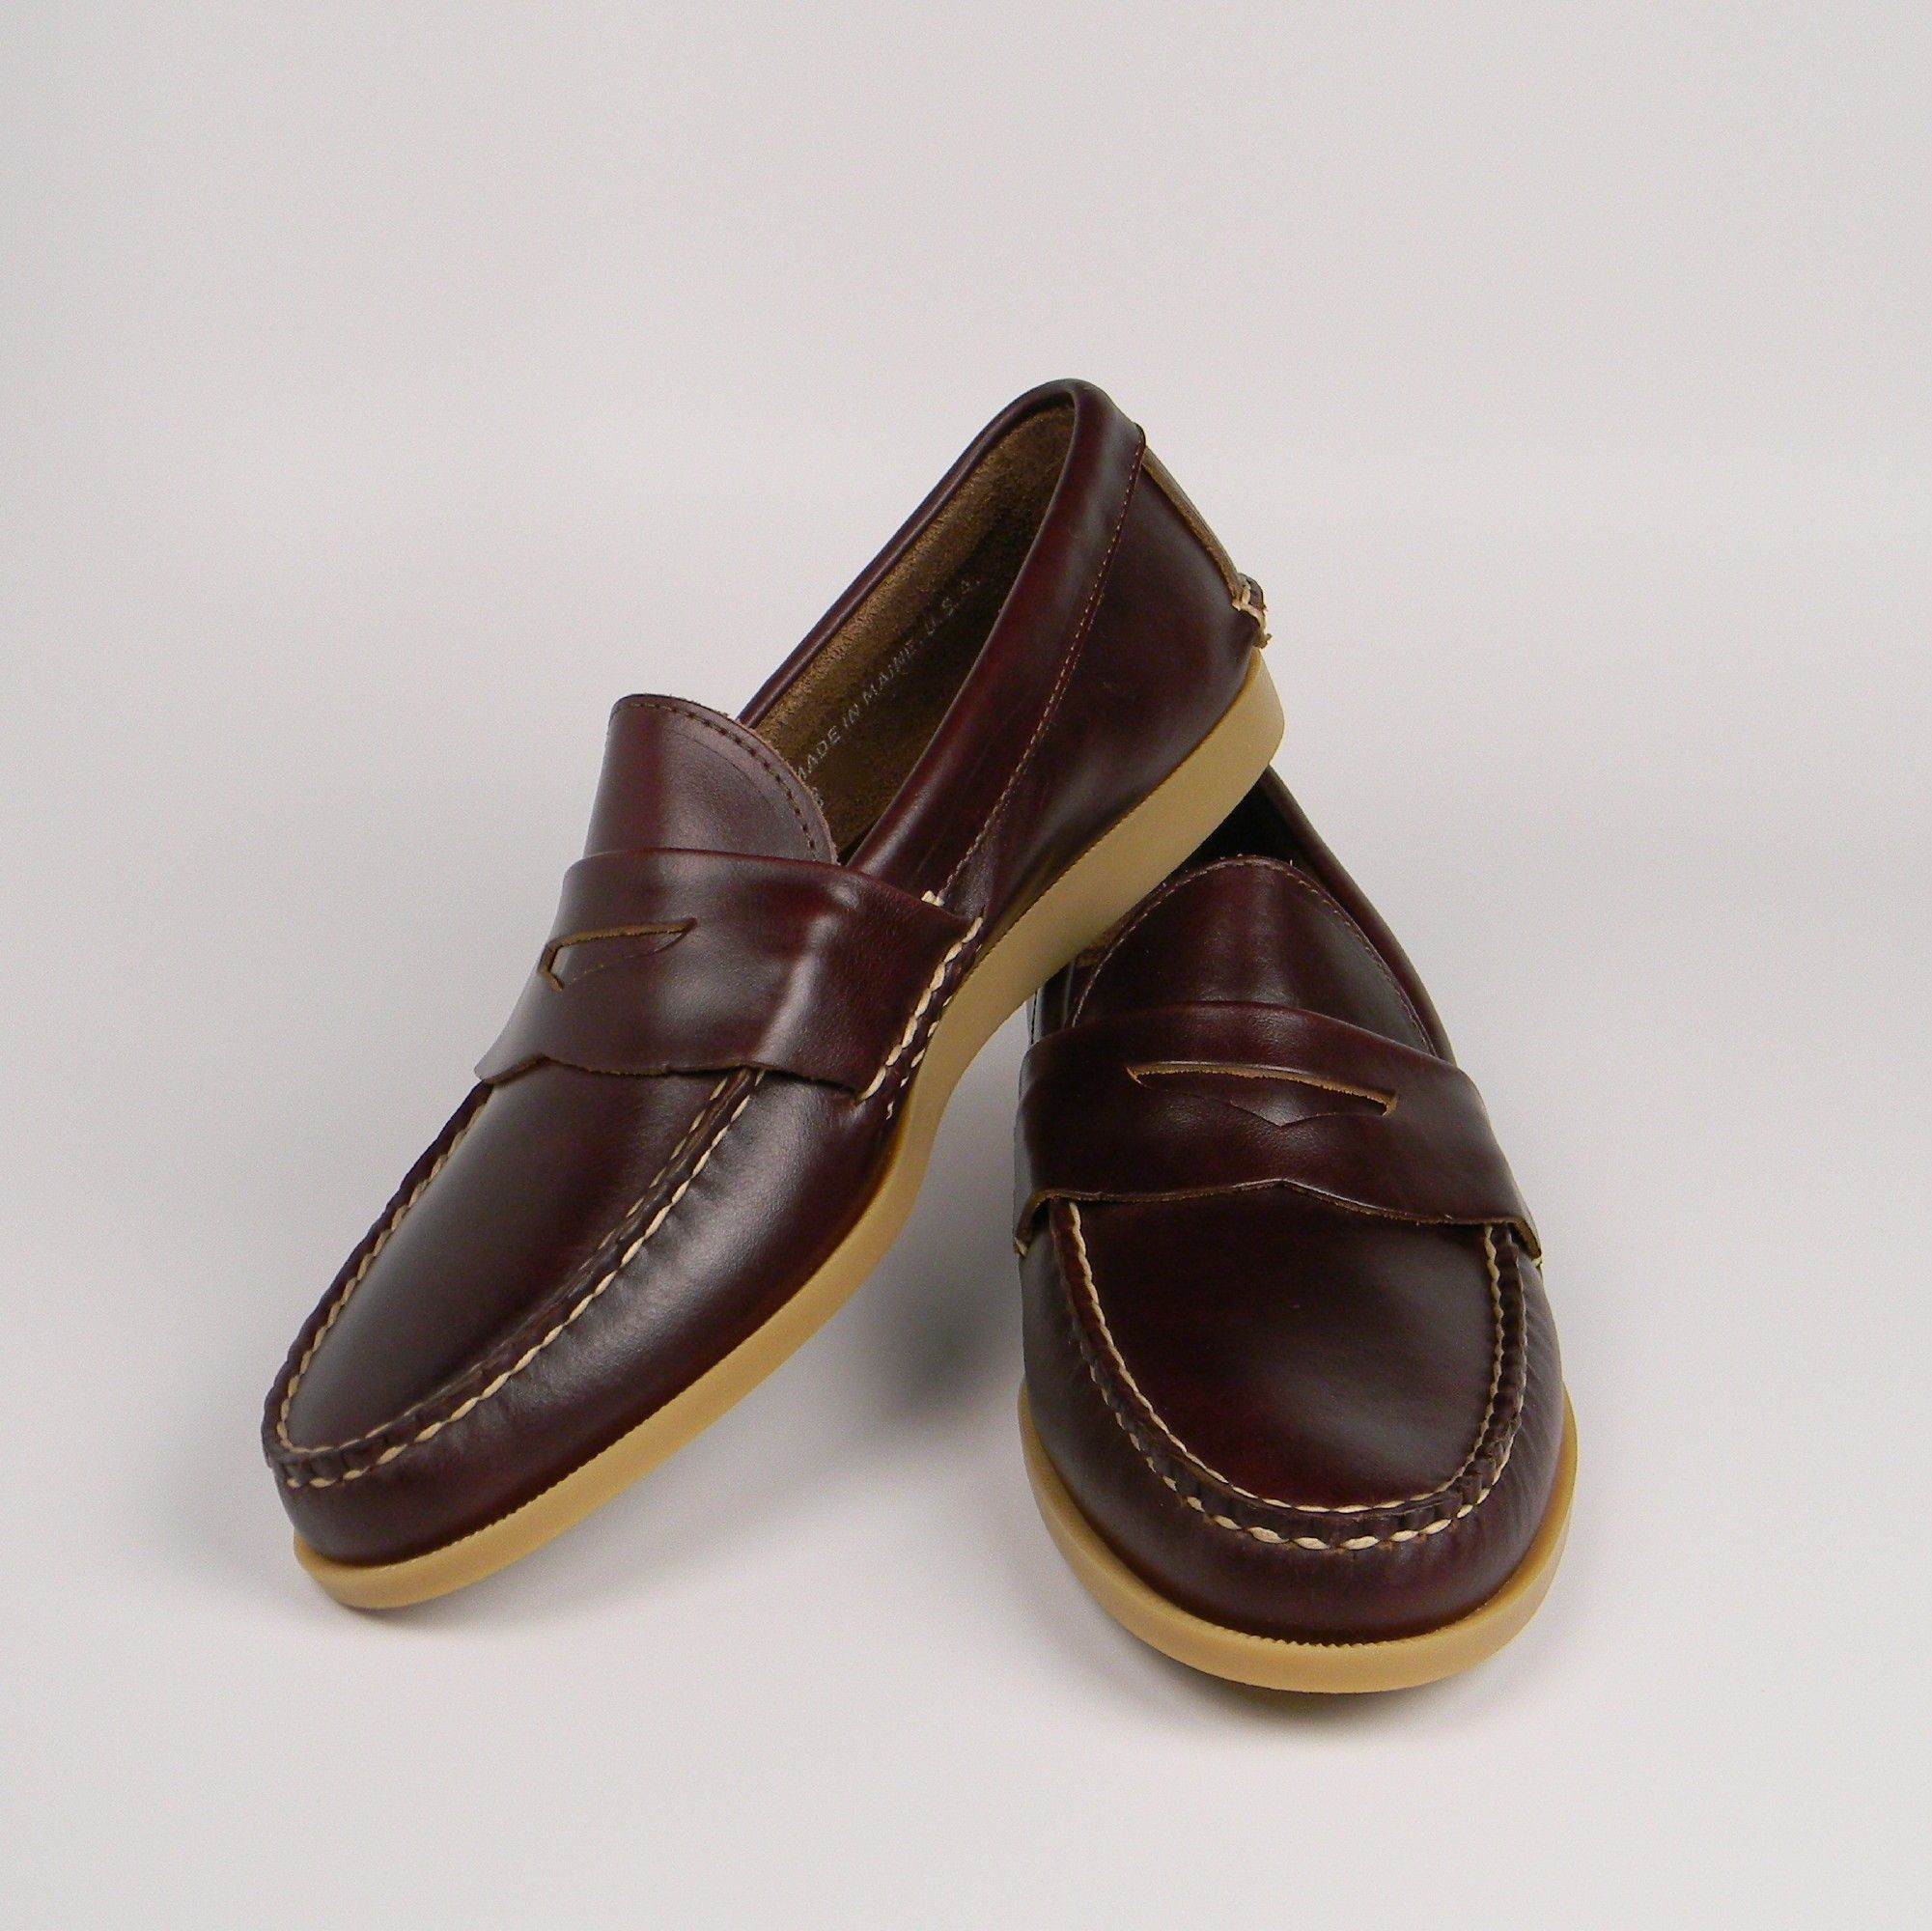 7bdba1997e6 Rancourt Pinch Penny Loafers - Color 8 Chromexcel